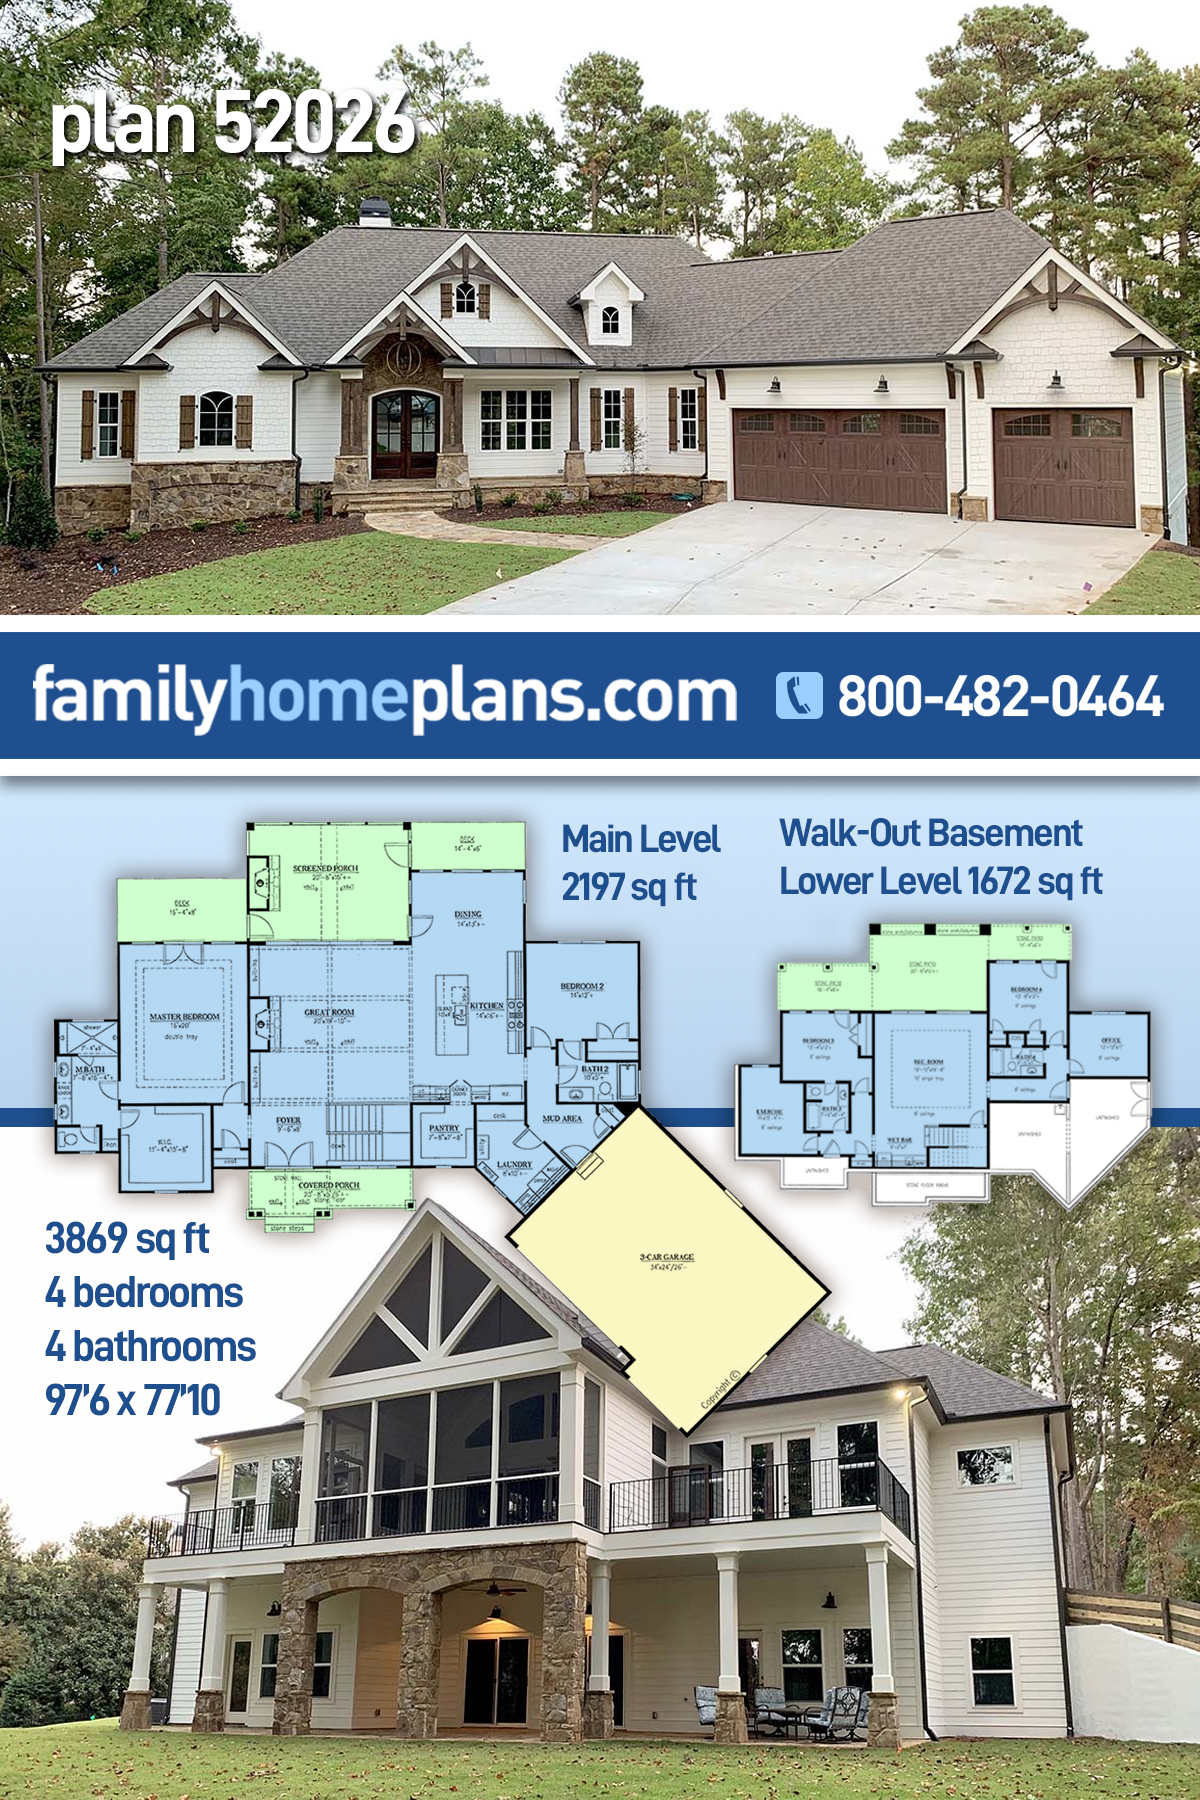 Cottage, Craftsman House Plan 52026 with 4 Beds, 4 Baths, 3 Car Garage